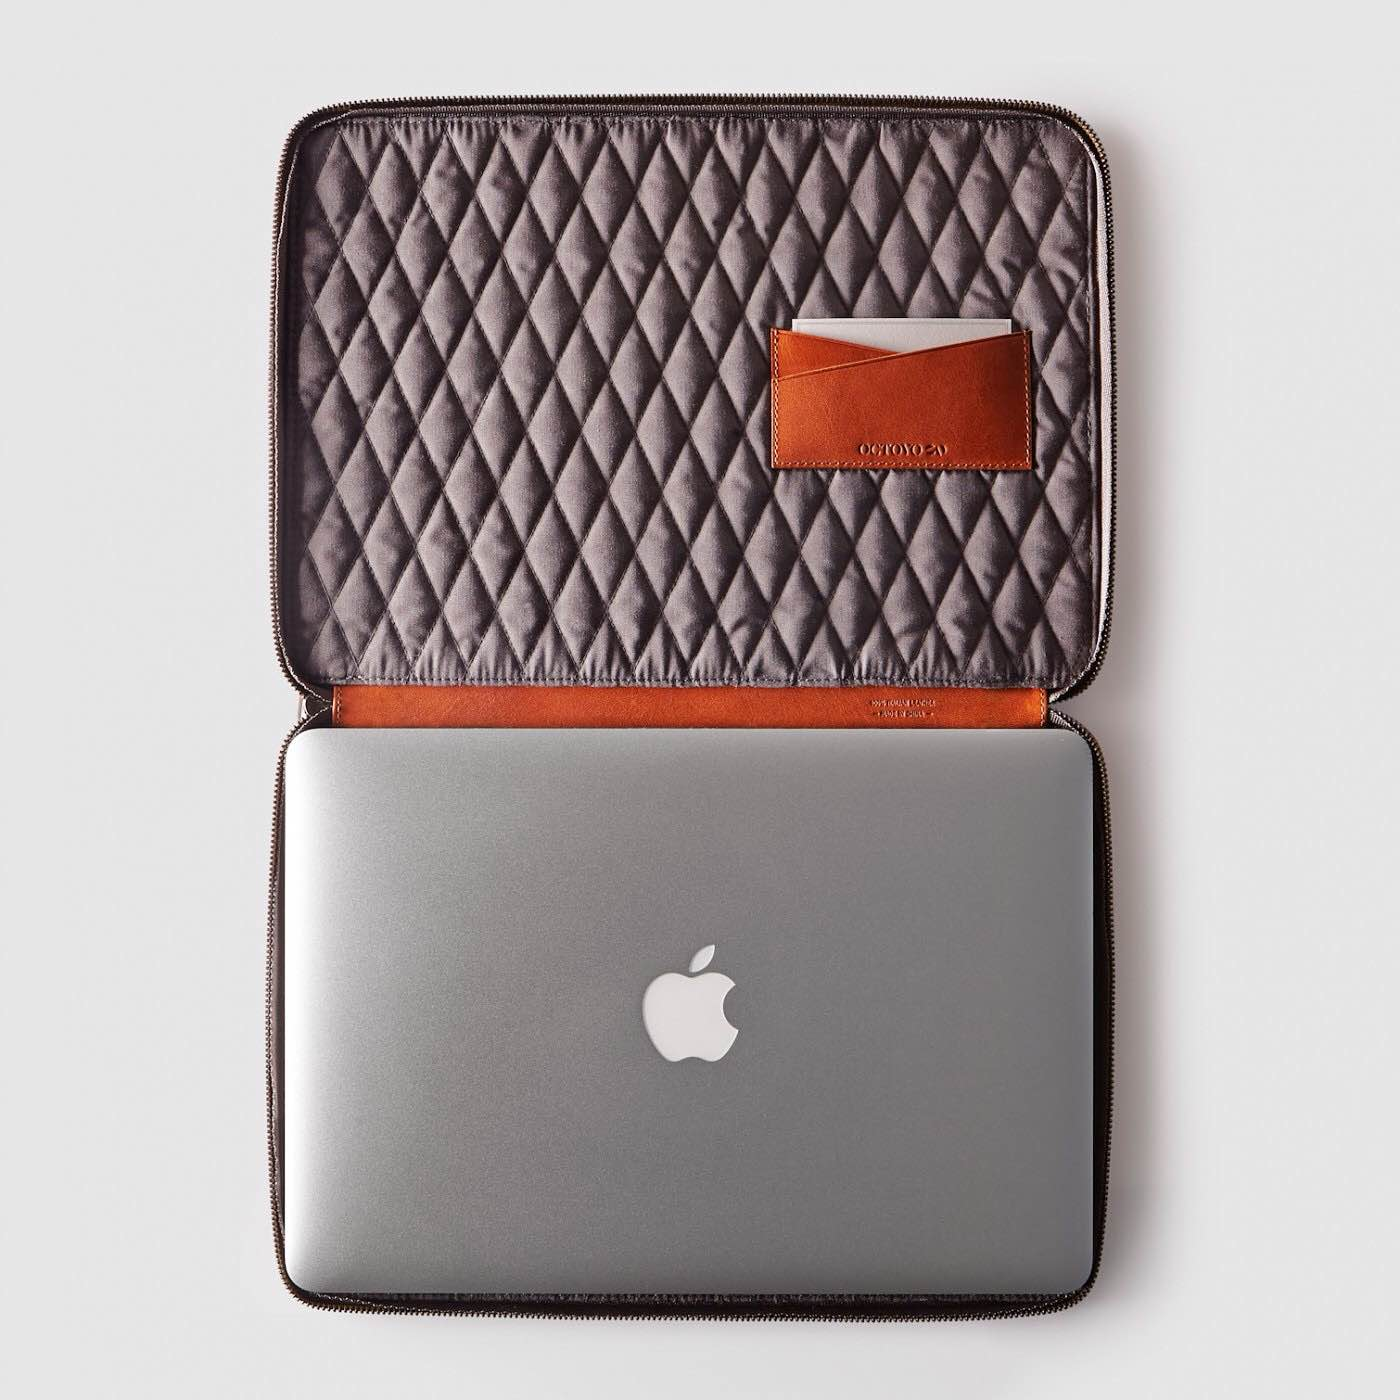 octovo-leather-folio-for-macbook-3